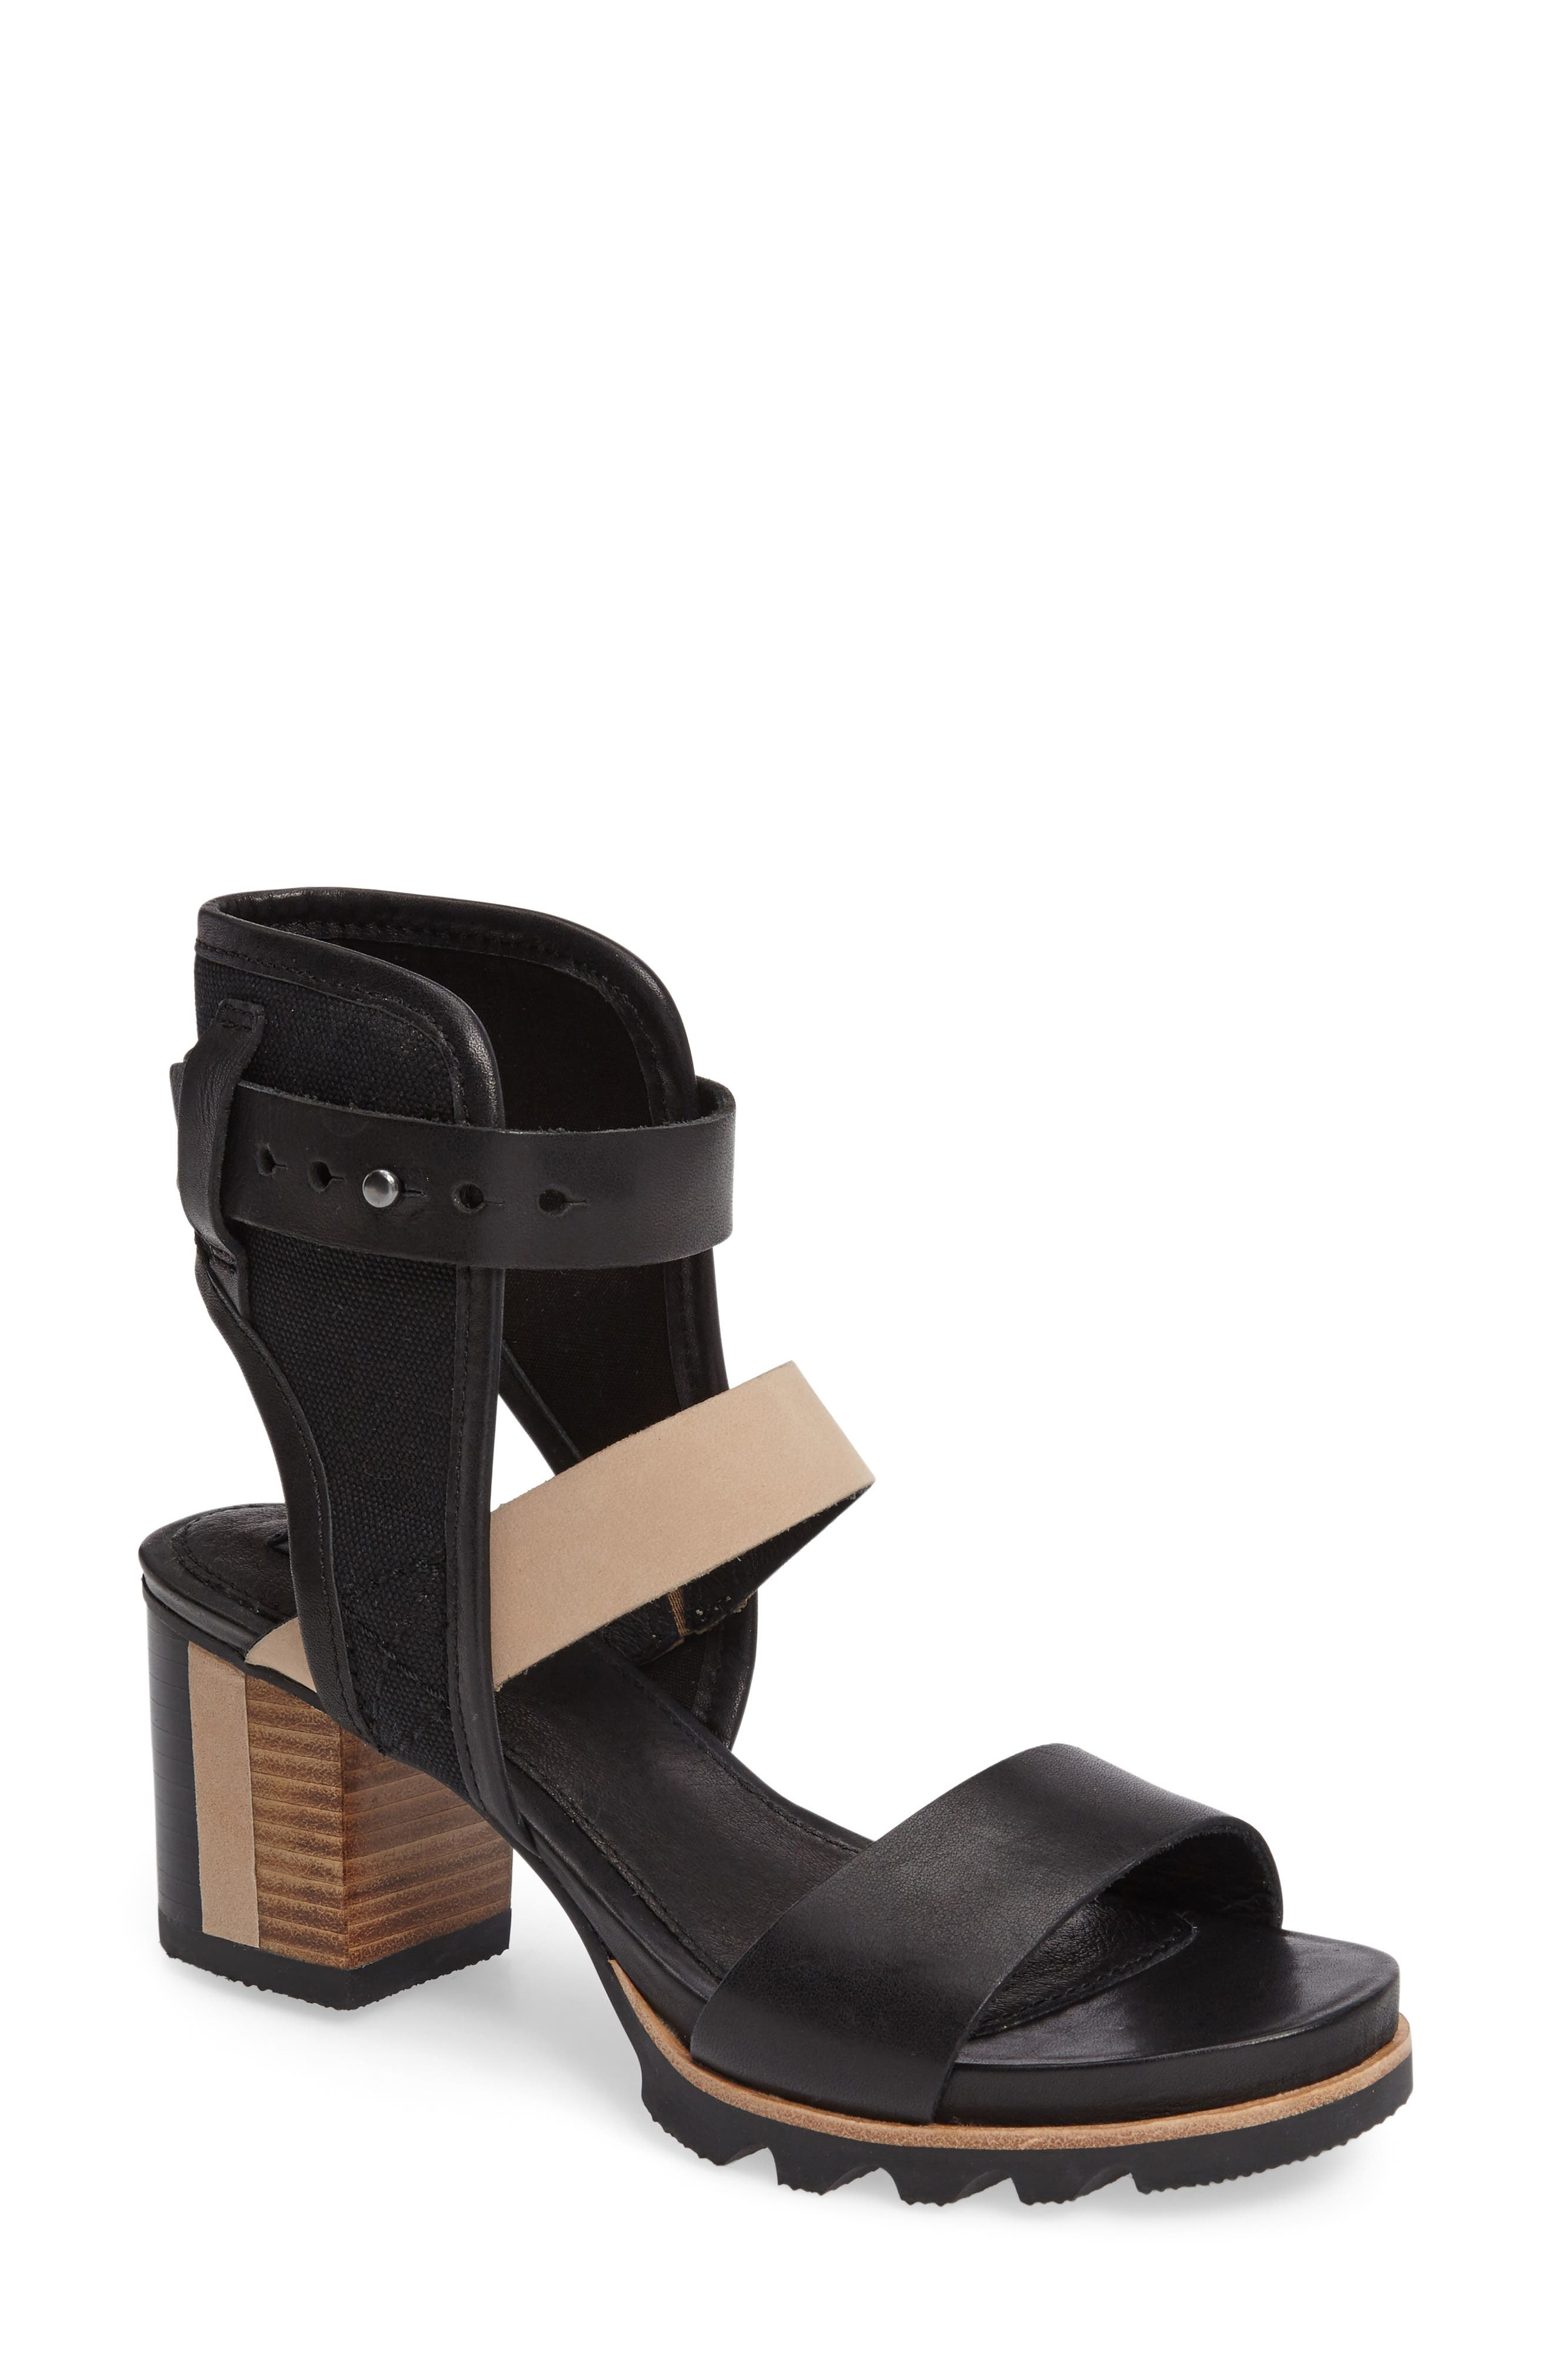 SOREL Addington Ankle Cuff Sandal (Women)